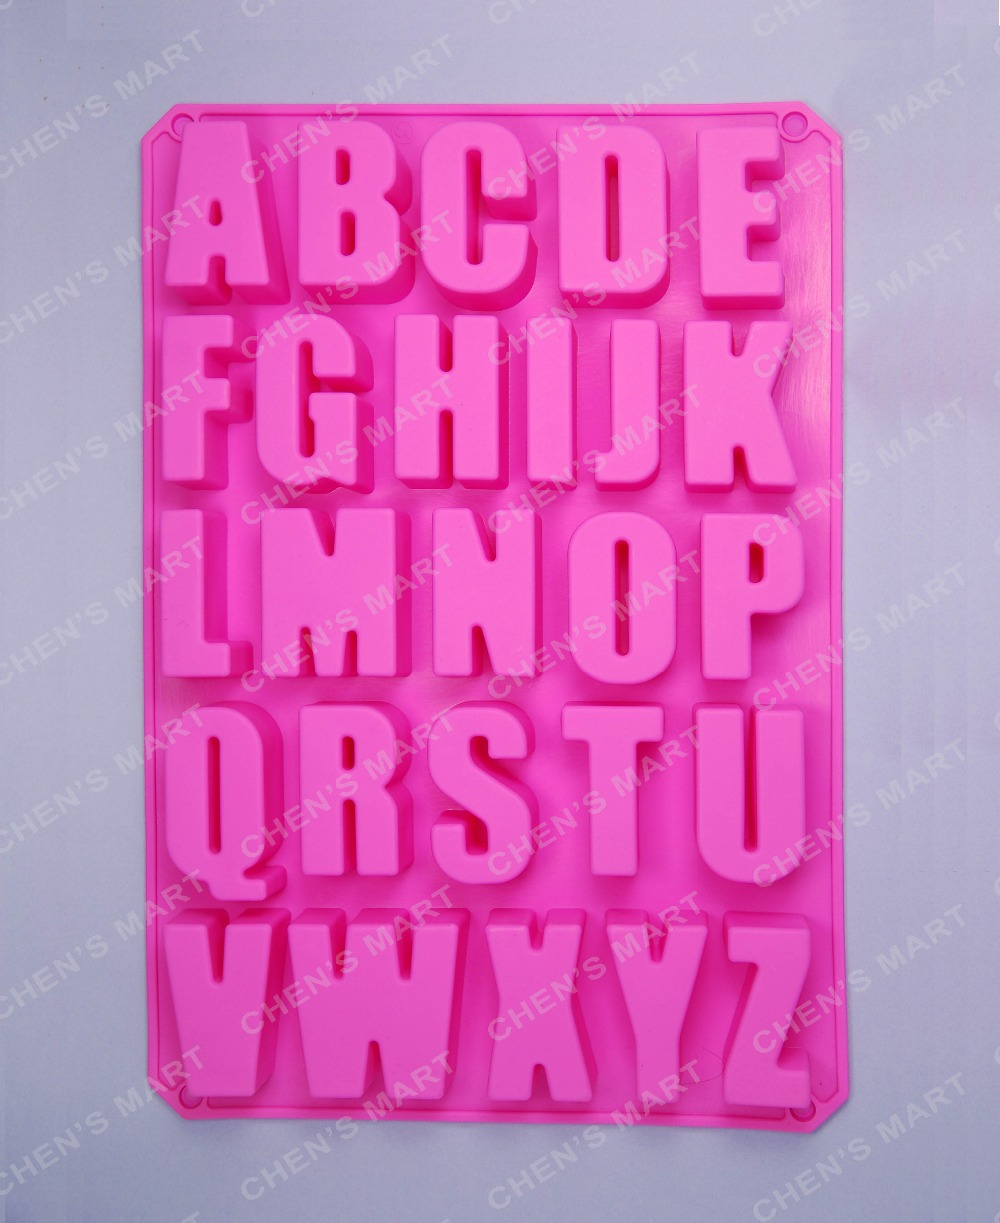 <font><b>Cake</b></font> Mold <font><b>1</b></font> pc 34x22.5cm Big Alphabet letter Silicone Mold Soap Mould <font><b>Cake</b></font> <font><b>Cupcake</b></font> Baking Bakeware <font><b>Chocolate</b></font> Soap Decorating